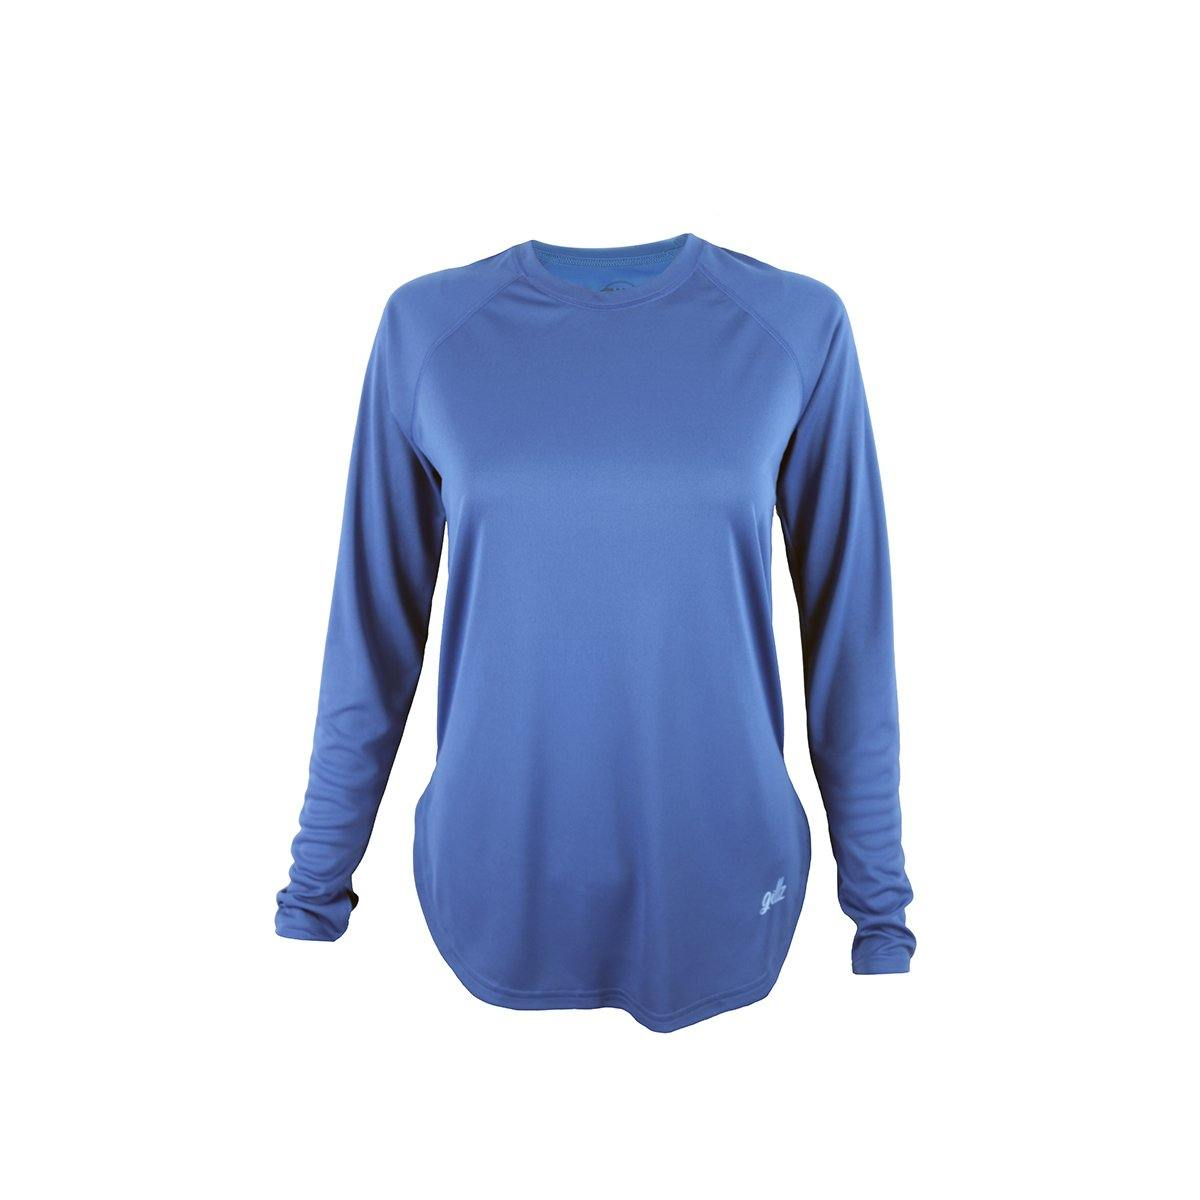 Gillz Women's Long Sleeve Seabreeze V2-Delft - Gillz